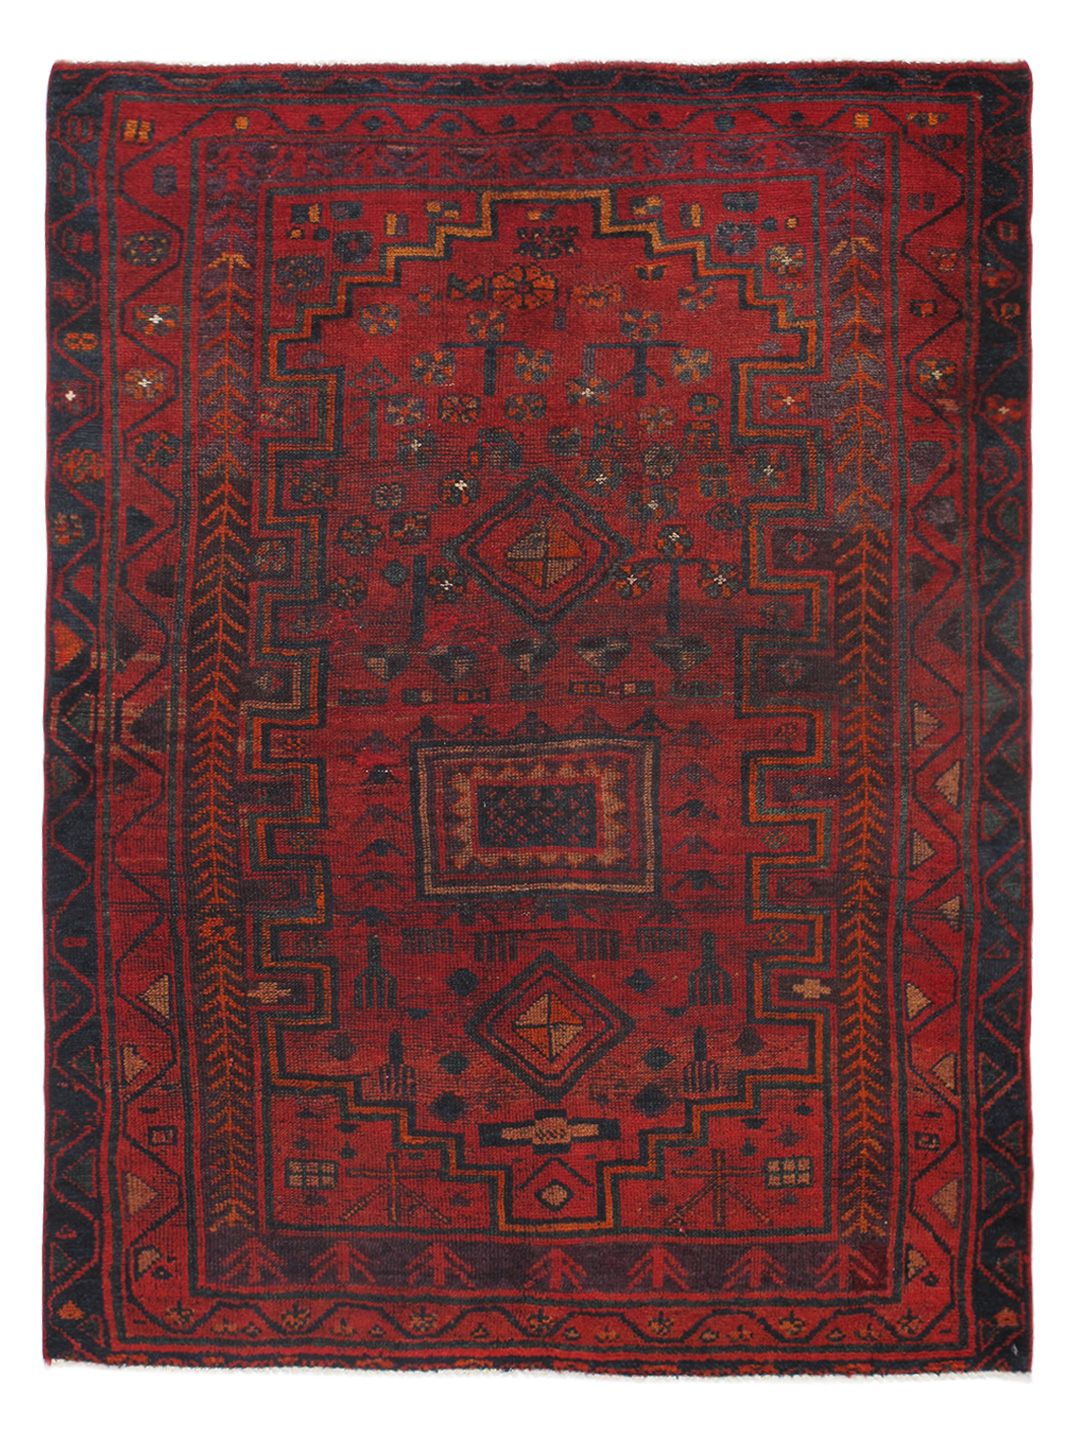 """Persian Hand-Knotted Rug (5'2""""x6'8"""") by Momeni at Gilt"""